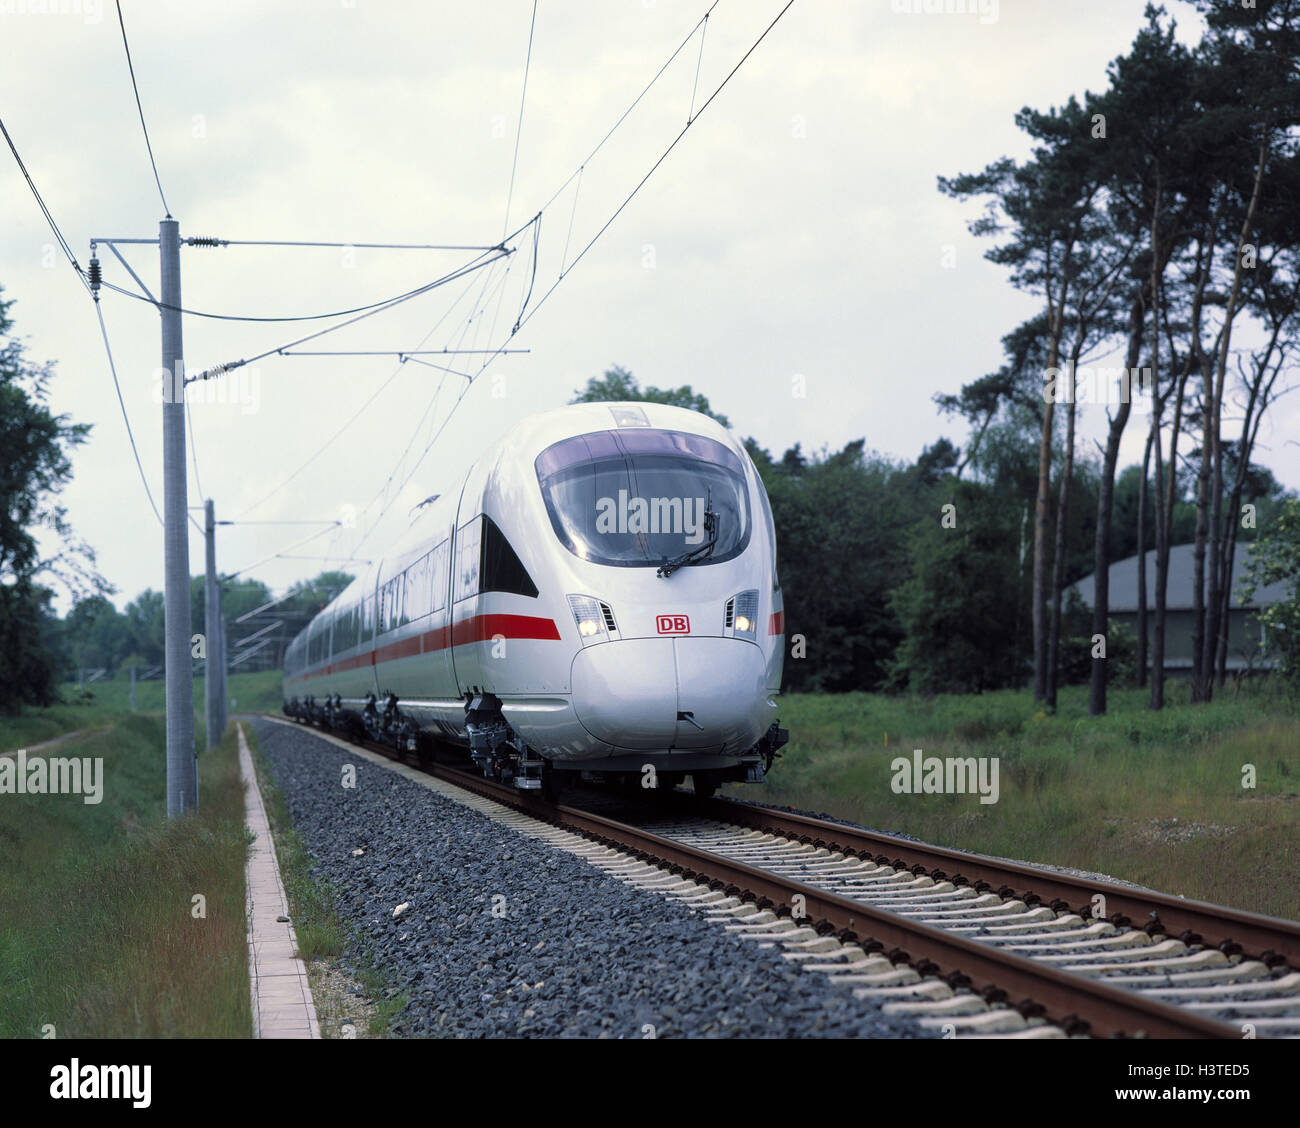 ICT, (the newest intercity express generation with Neigetechnik, commissioning: Summer, 1999) - Stock Image